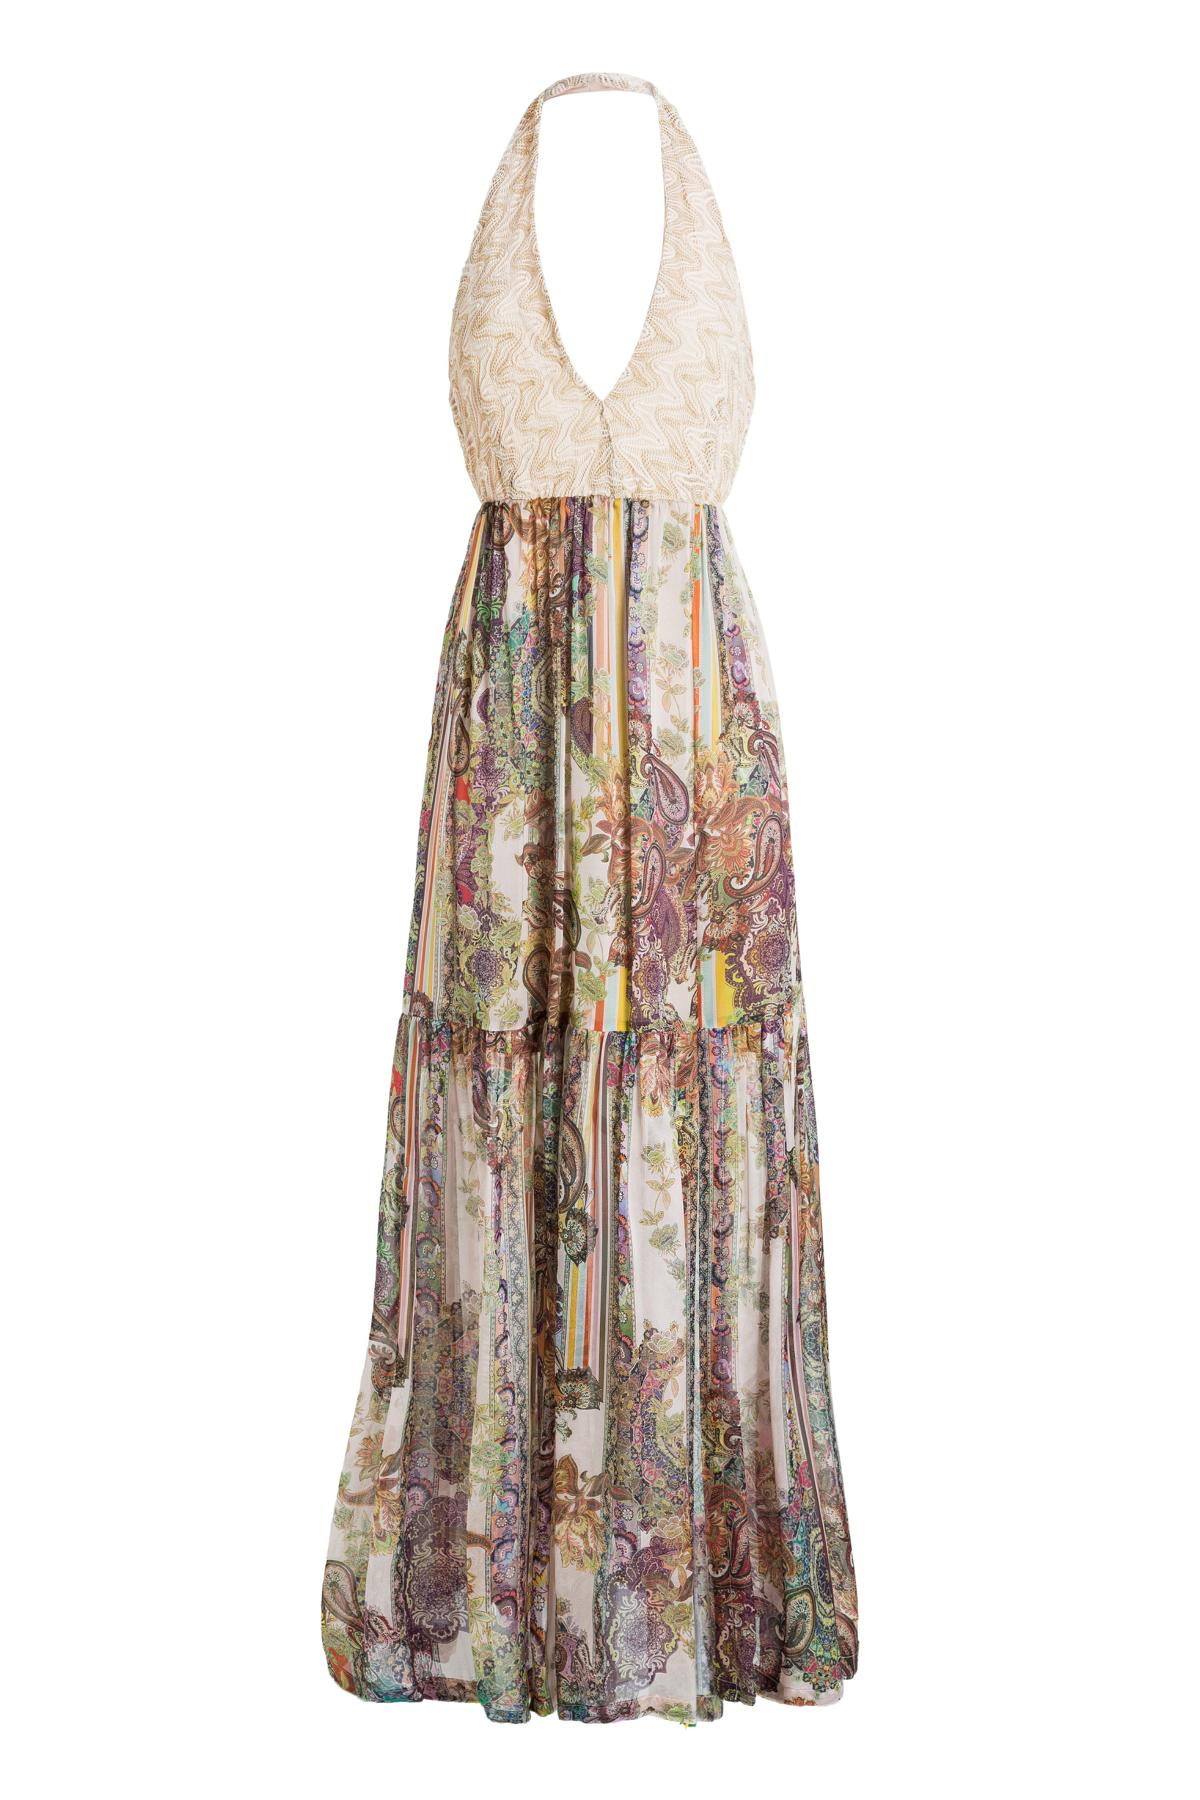 c33a0cbb33a Rosé-Colourful Maxi Dress Madalyn with Knitted Top